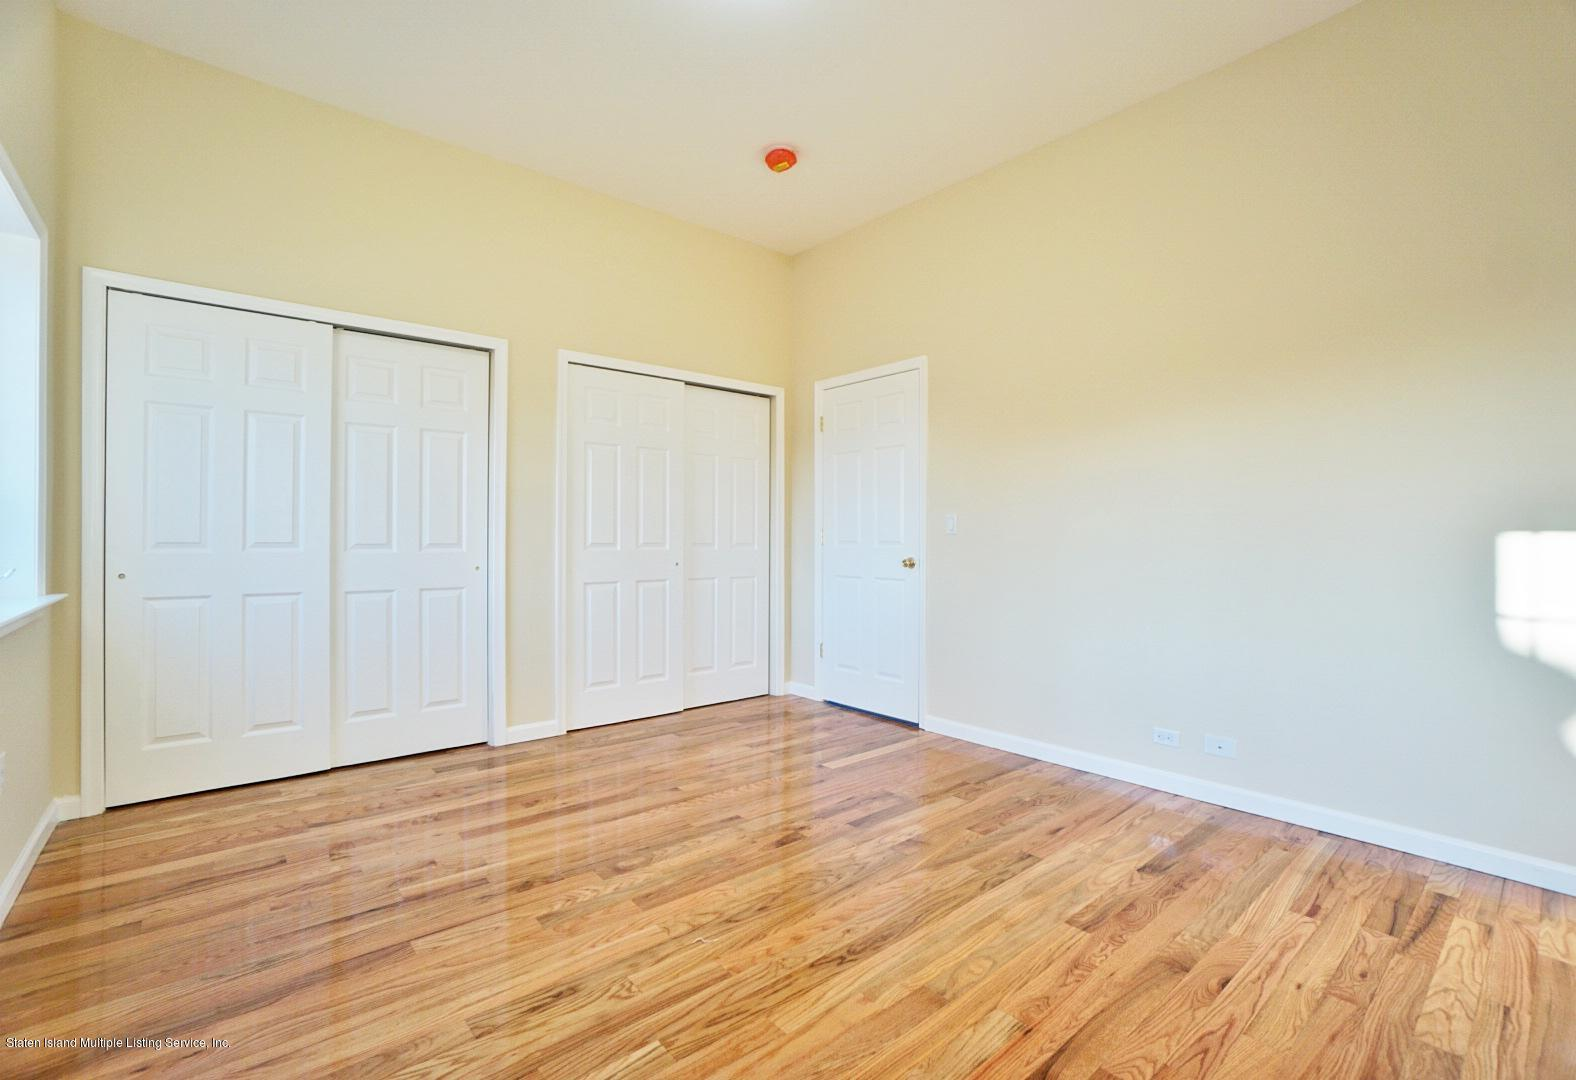 Single Family - Attached 34 Bamberger Lane  Staten Island, NY 10312, MLS-1135521-11